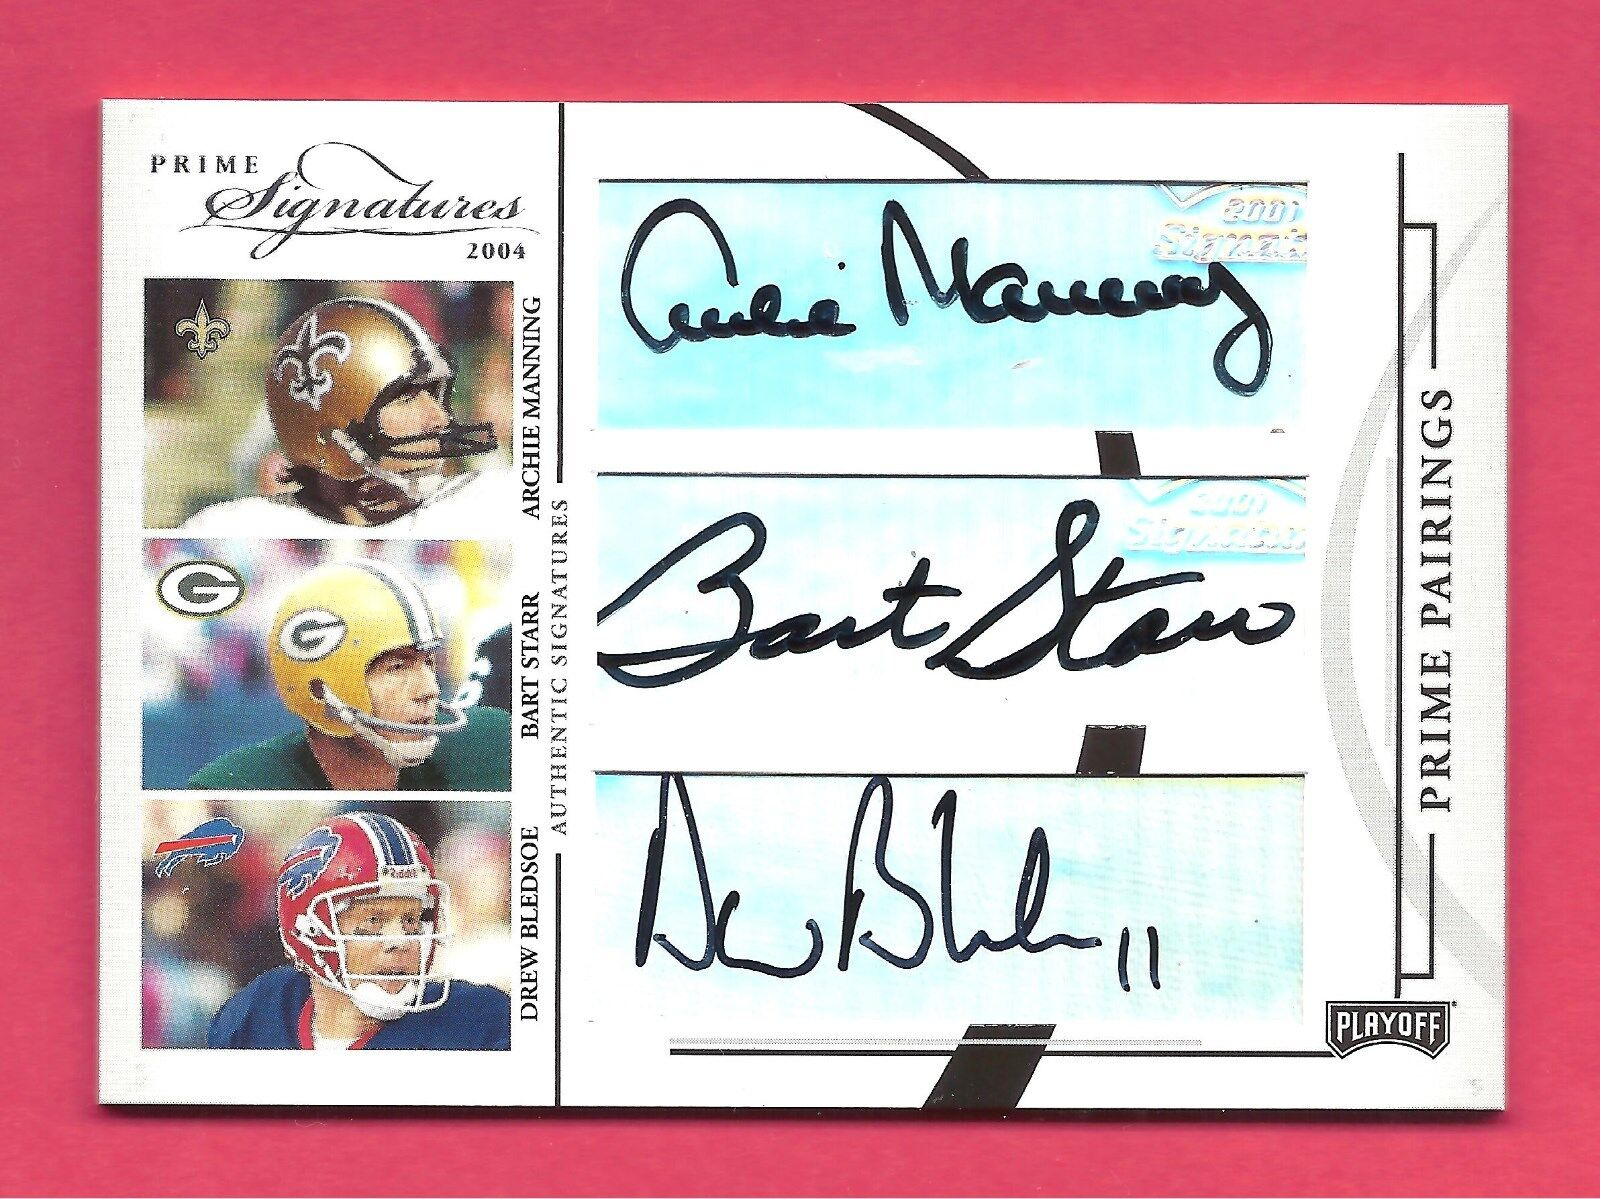 Starr/Baugh/Aikman/Manning/Cunningham/Beldsoe 2004 Playoff Prime Signautues /33